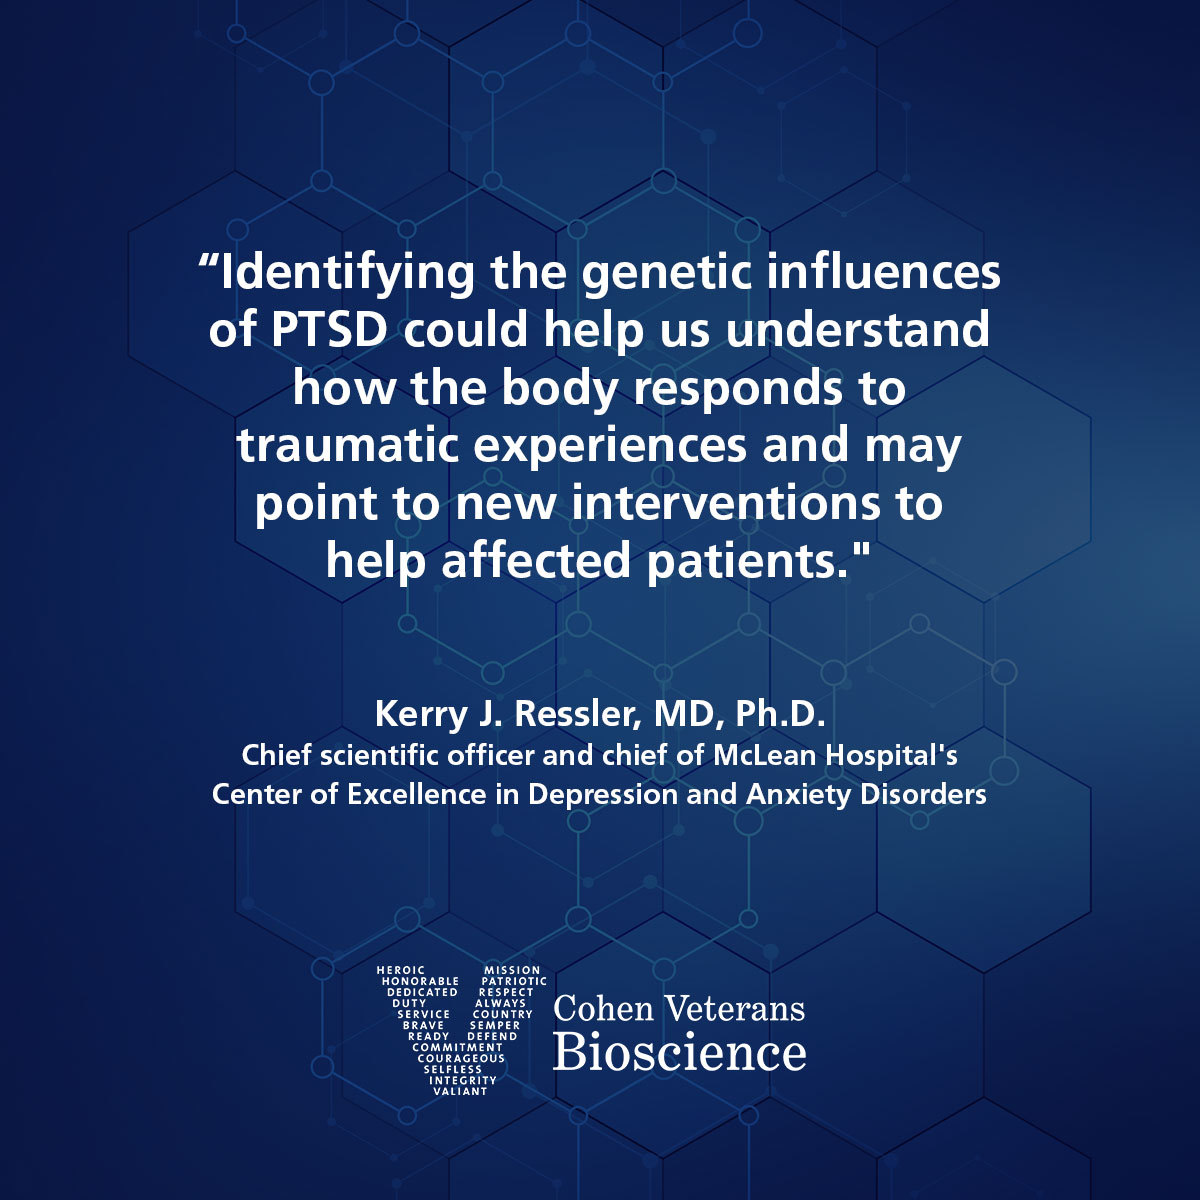 Kerry Ressler, MD, PhD quote